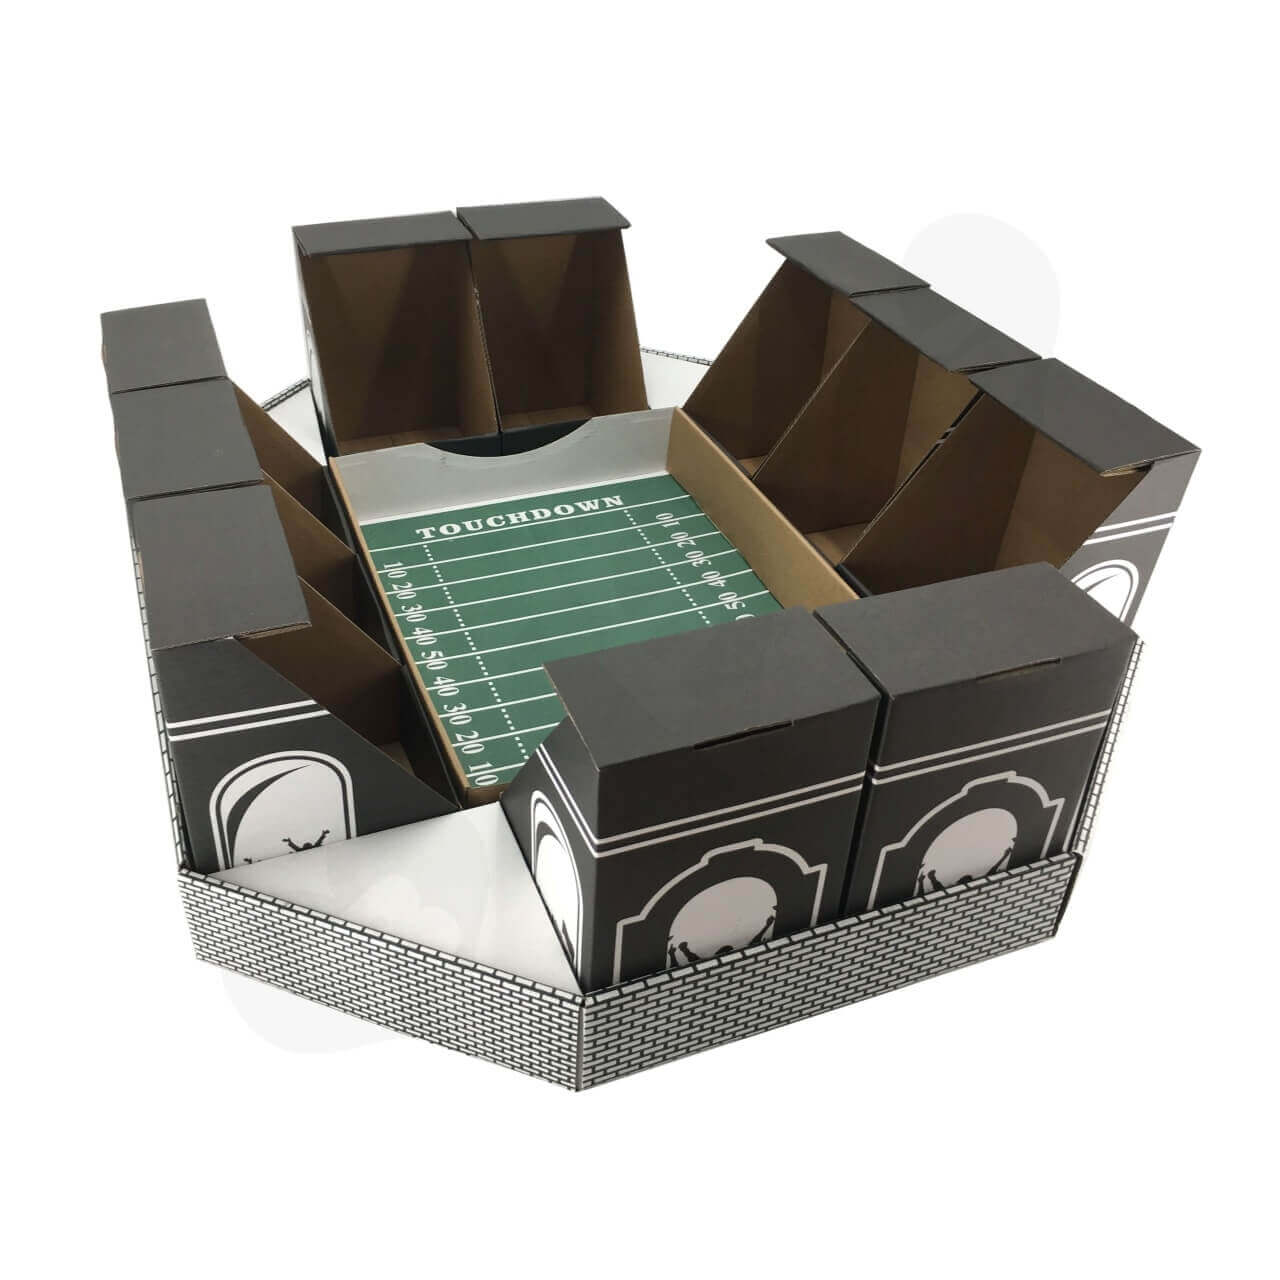 Cardboard Snack Stadium Super Bowl 4